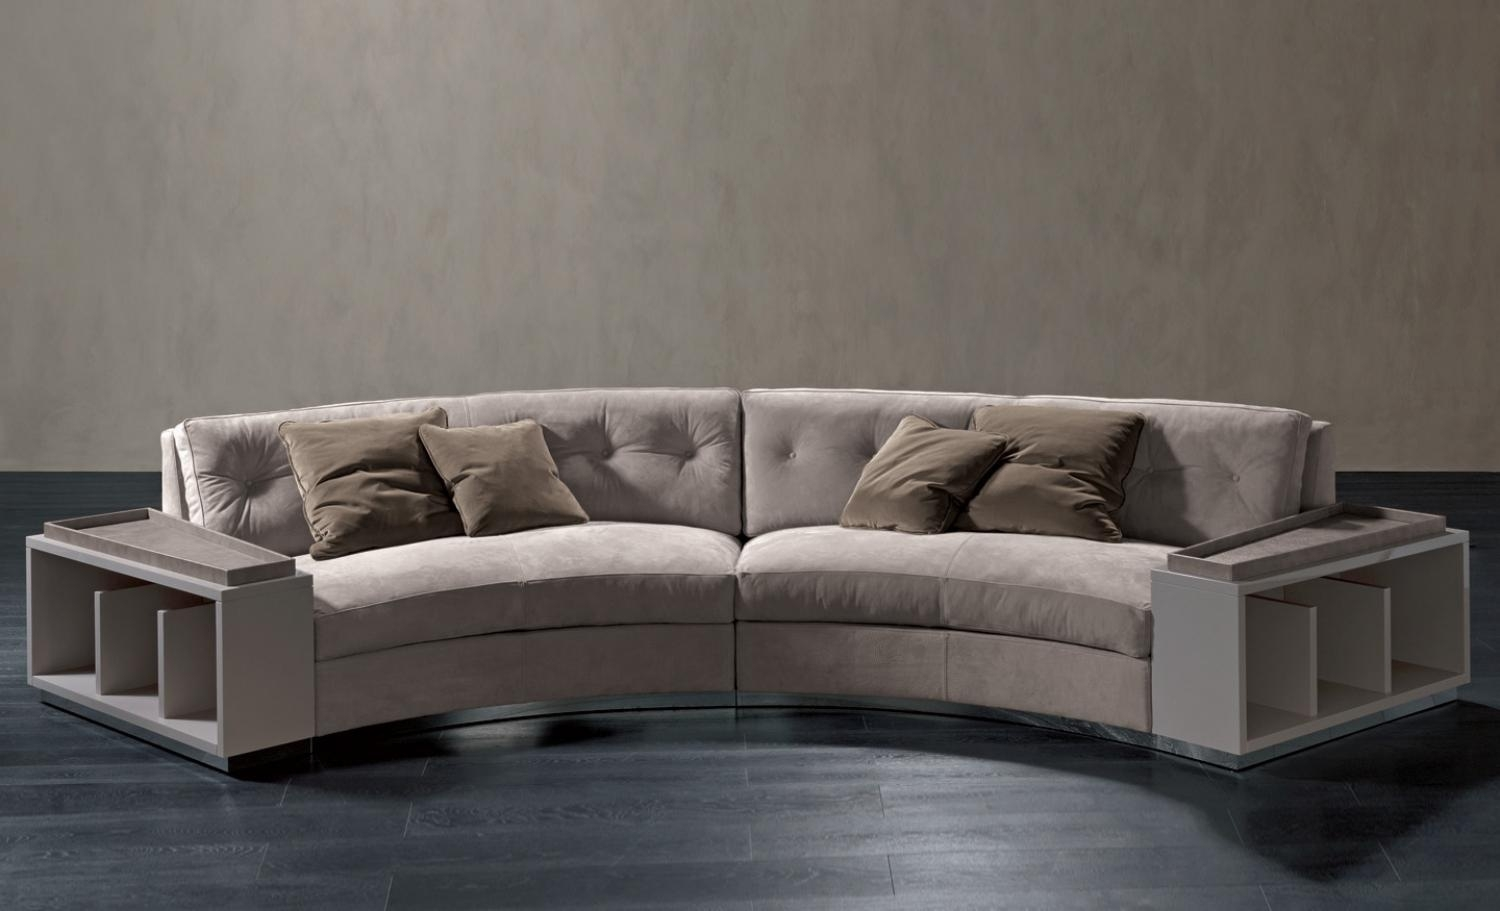 Semi Circular Sofa In Leather Circus, Rugiano – Luxury Furniture Mr Intended For Semicircular Sofas (View 2 of 10)